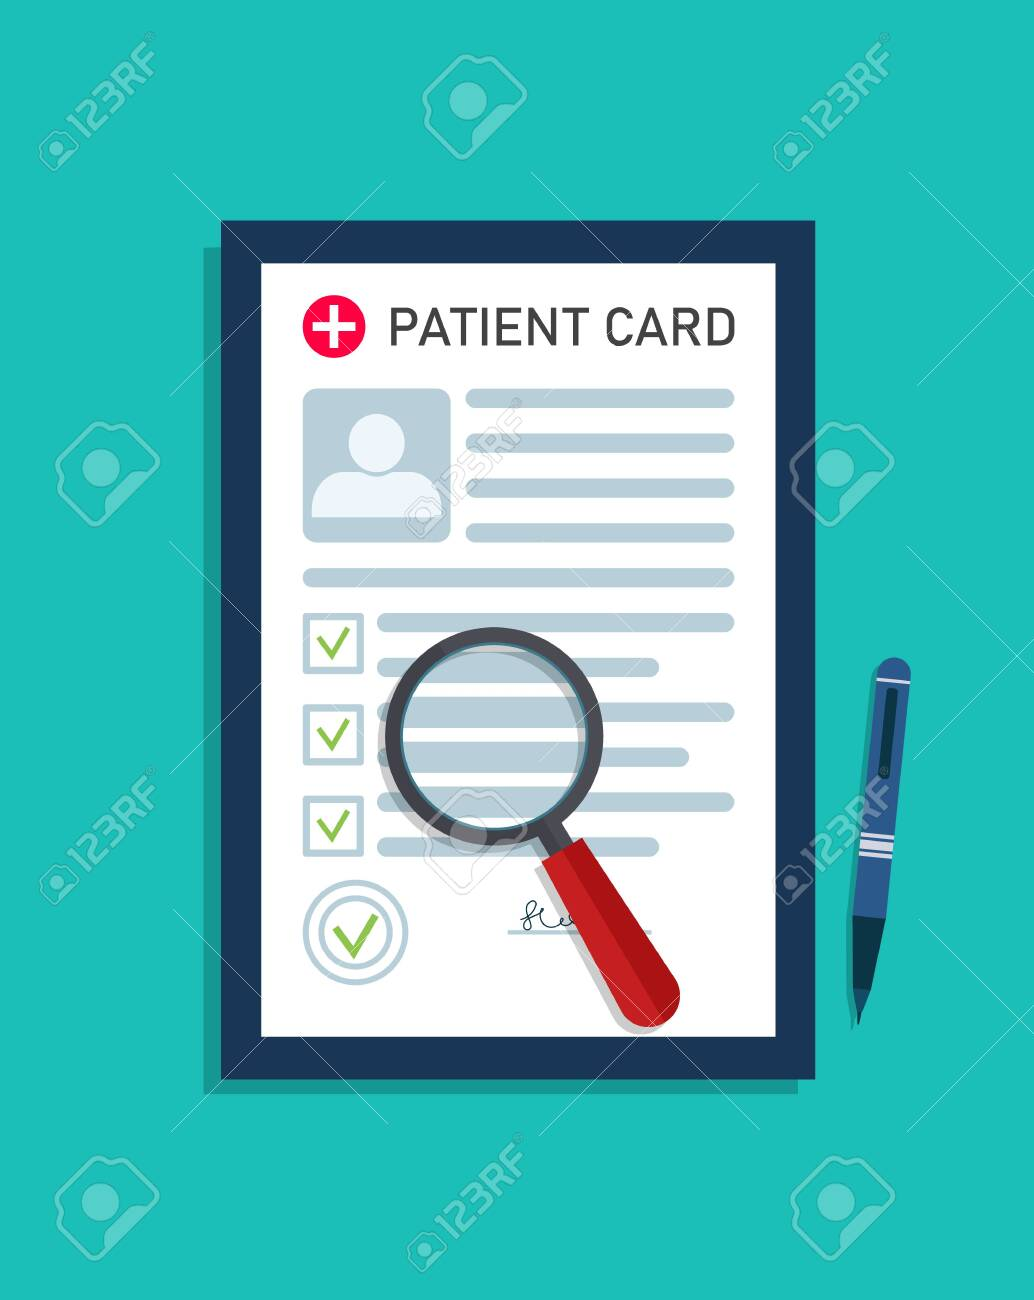 Patient medical card. Report about health. Record in document from doctor. Medic investigation in hospital. Medical form with profile, data of diagnosis and prescription. Medicine icon. Vector. - 154395981